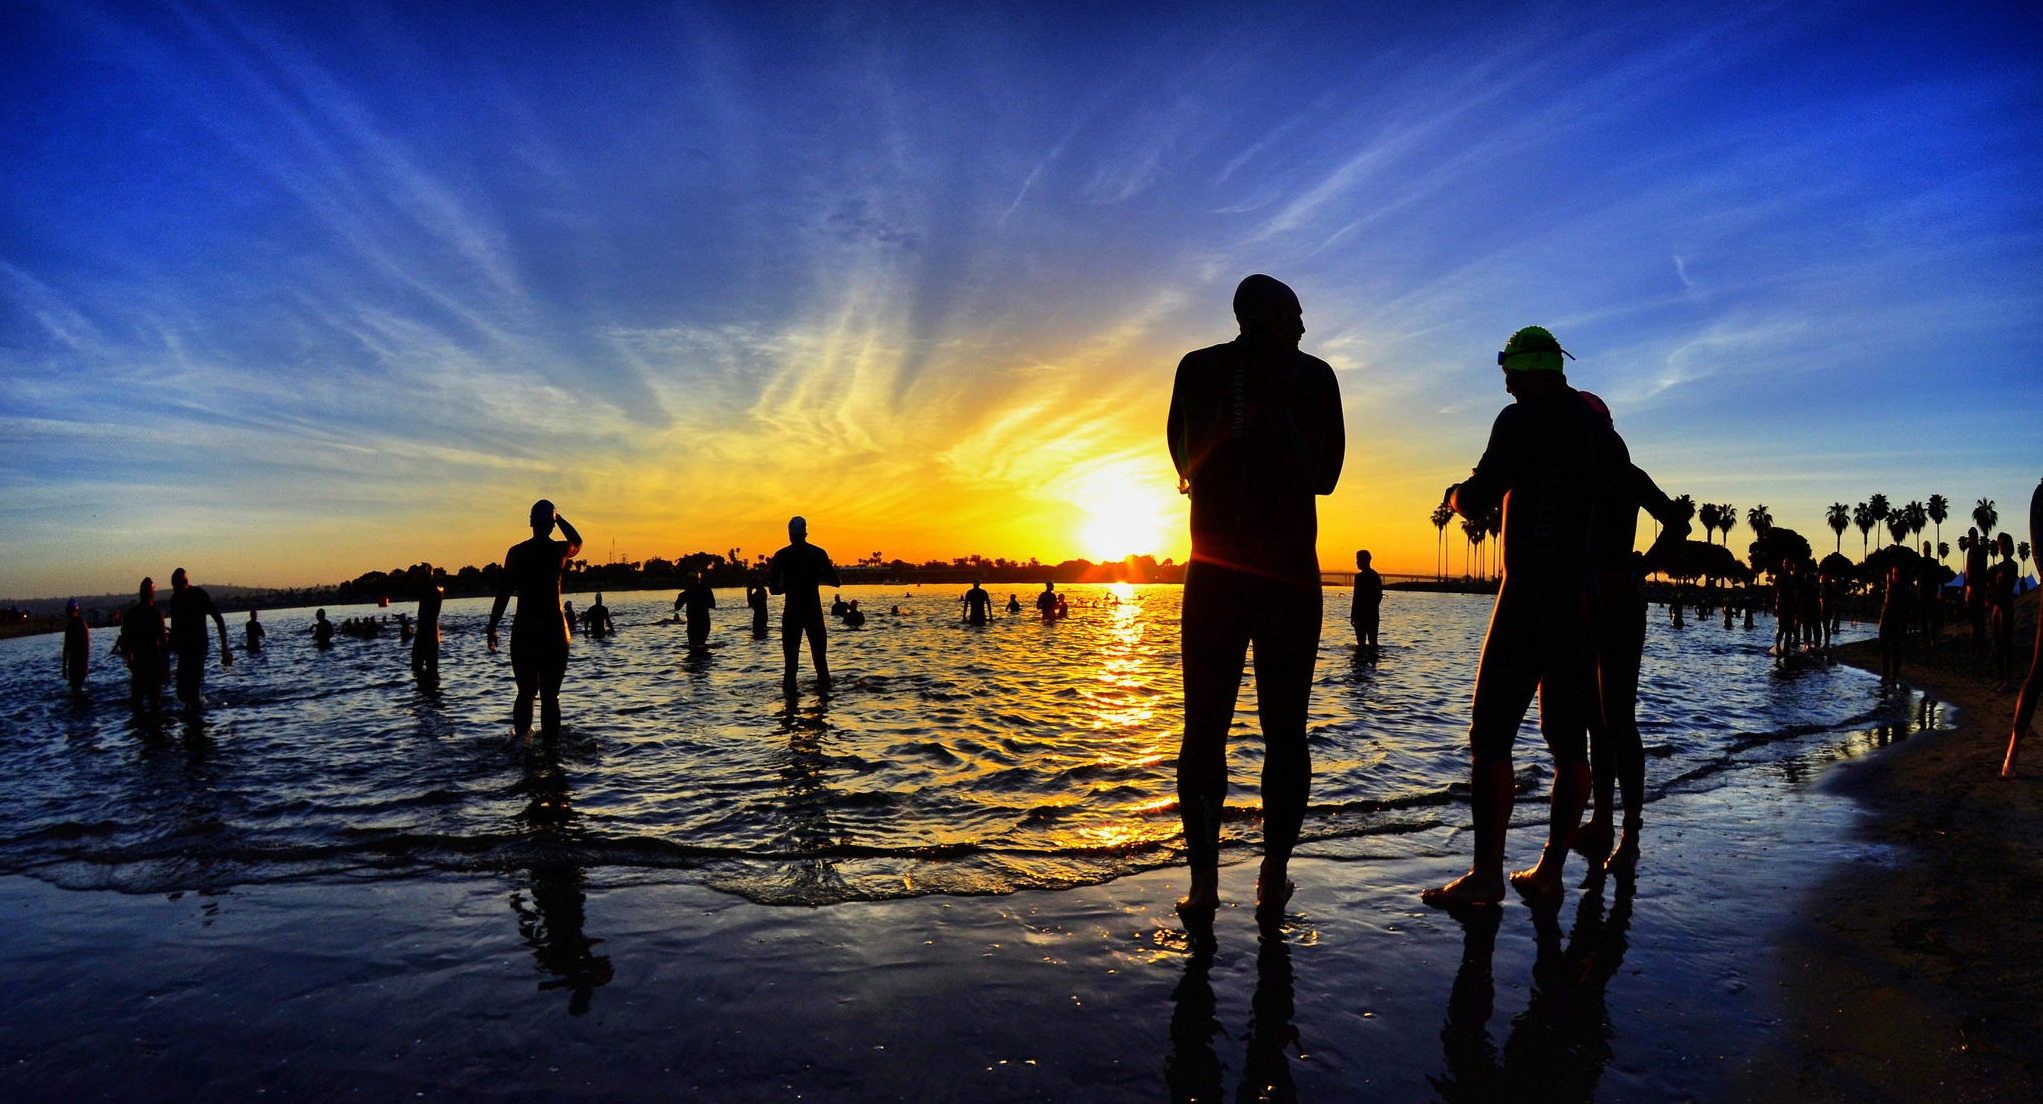 Waiting for the Start of the Triathlon in San Diego - April 20,